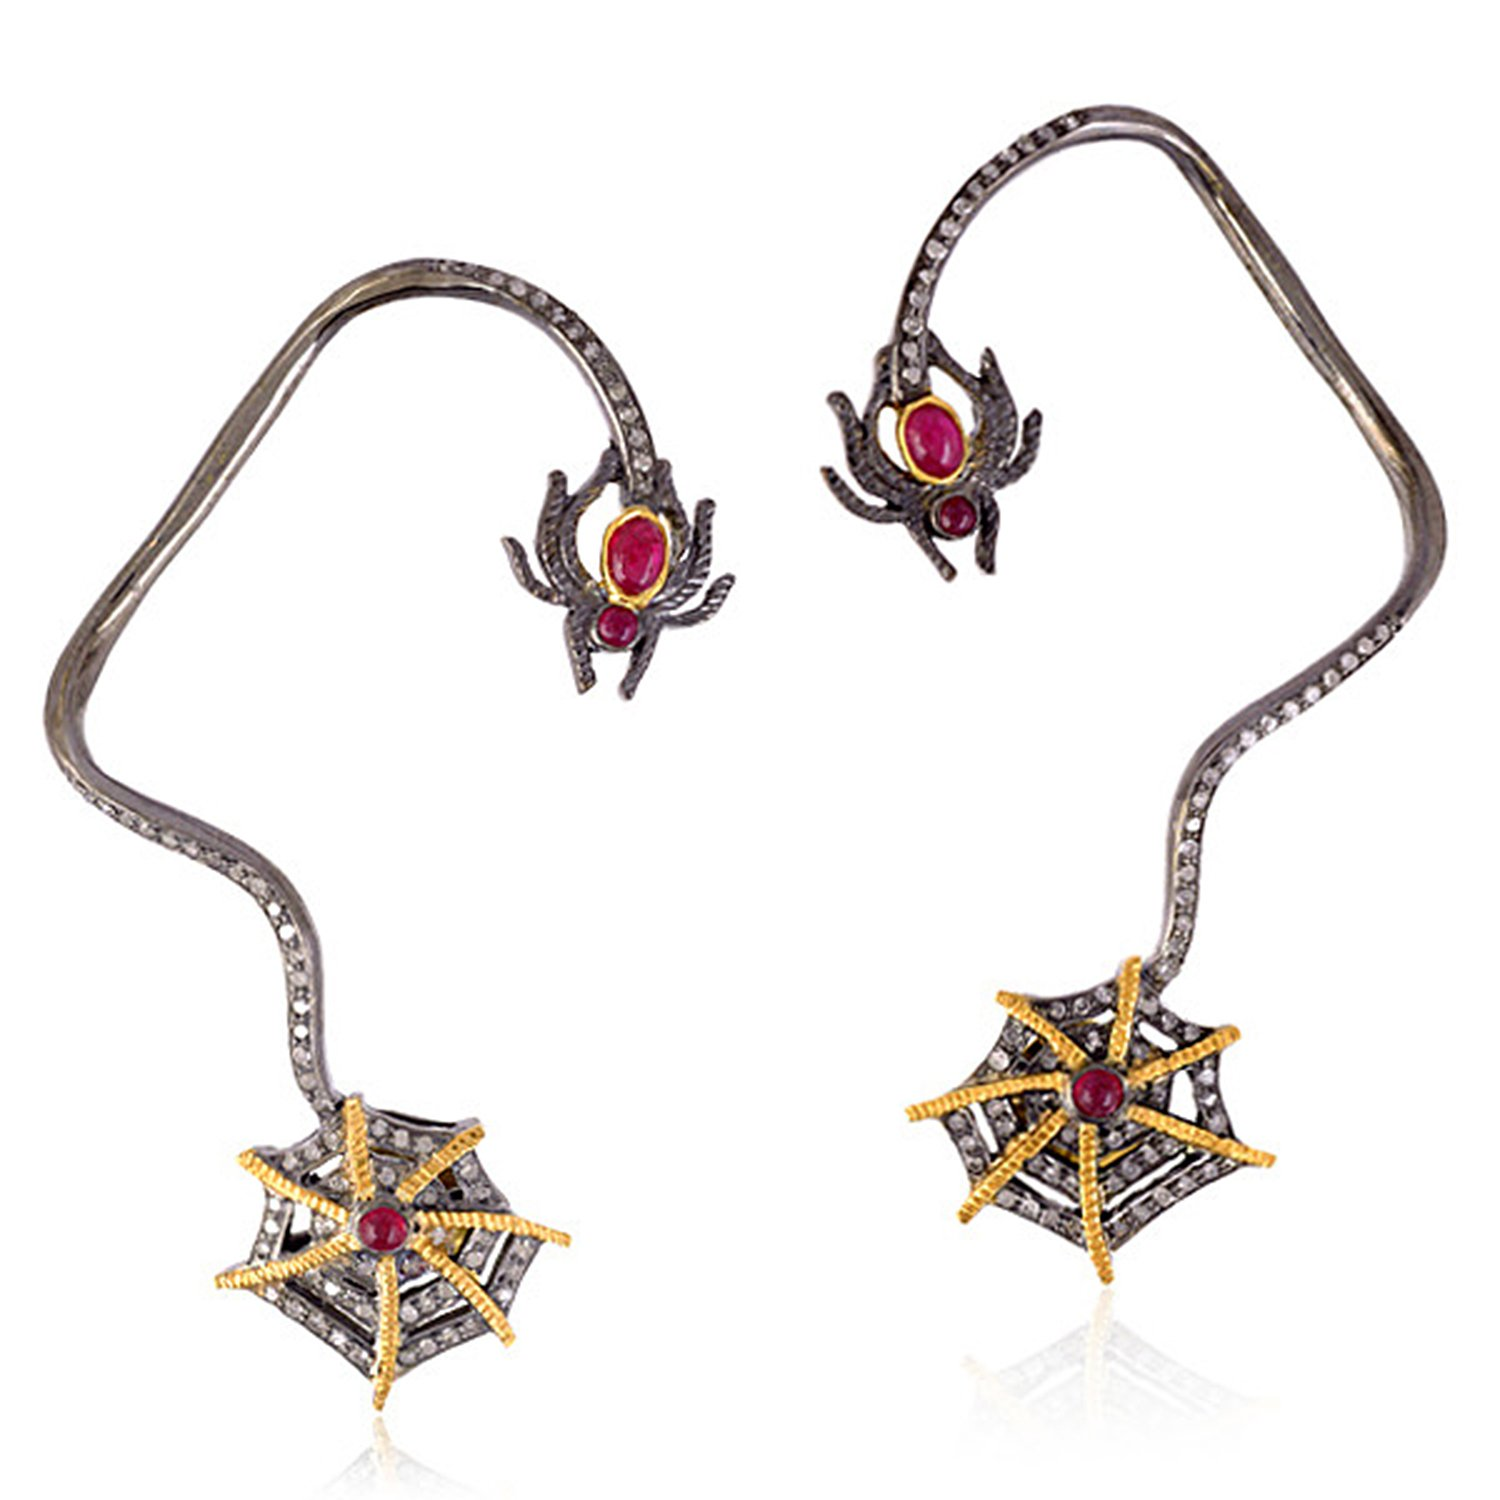 Ruby & Diamond Spider Web Style Ear Cuff Crawler Climber Earrings in 18K Yellow Gold & Sterling Silver